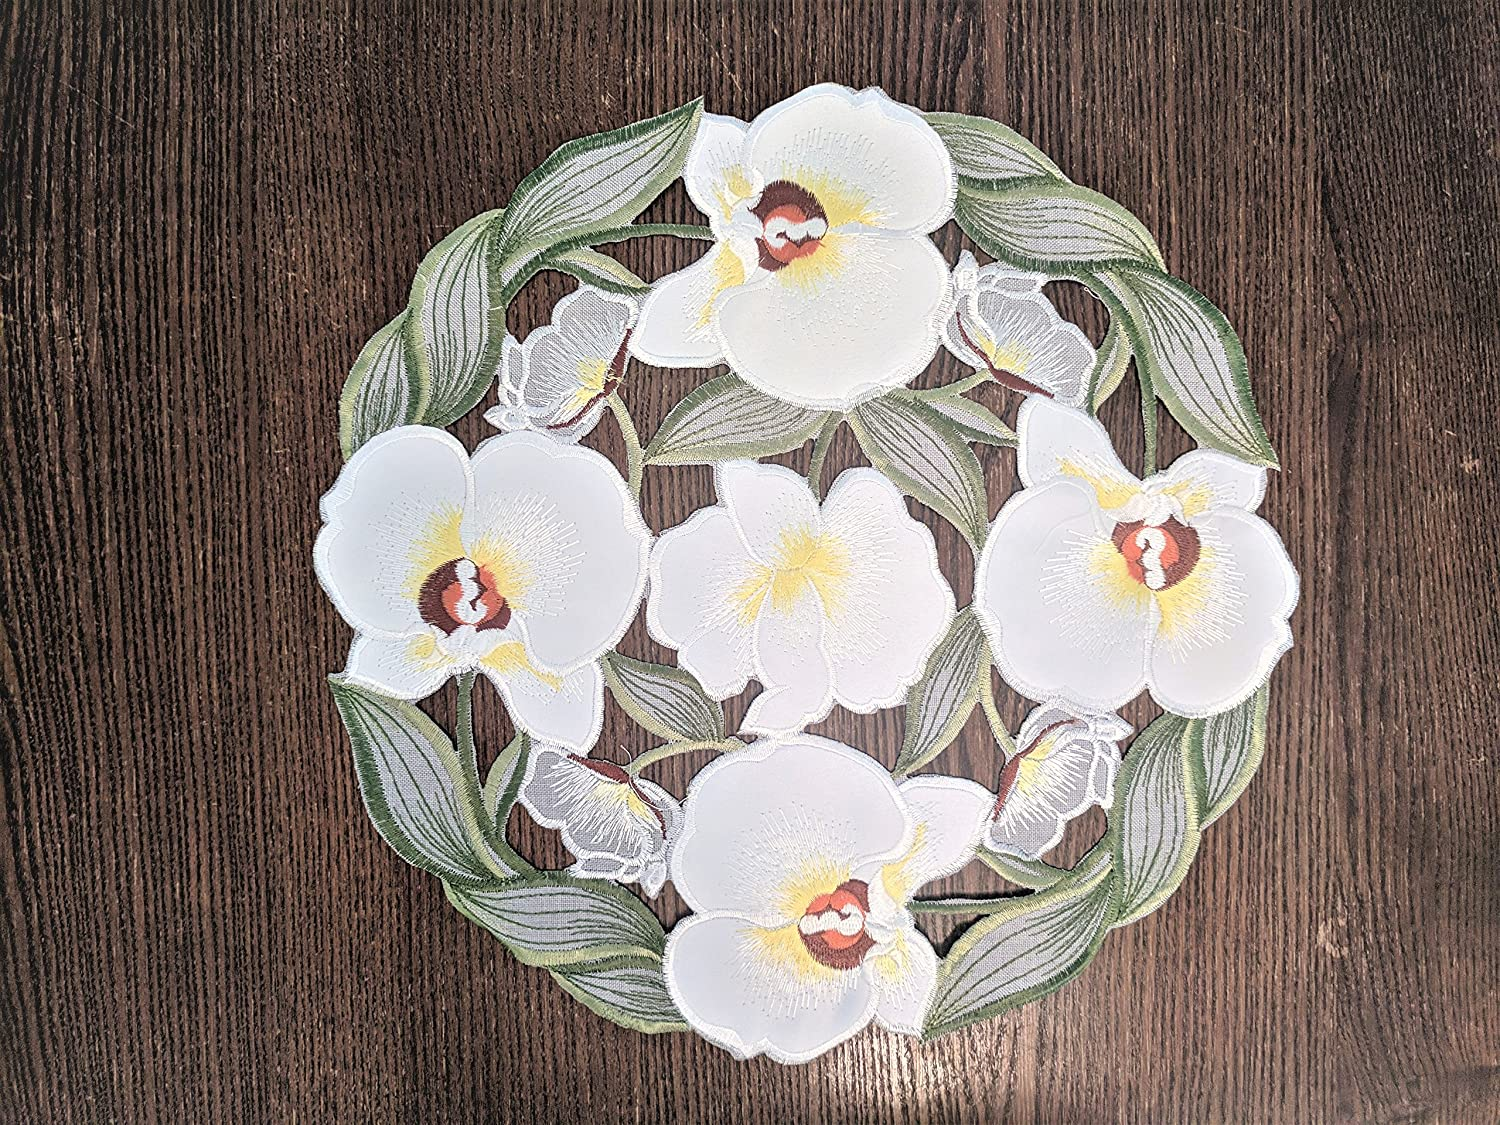 Doily Boutique Easter Place Mat or Doily Round with White Orchids and Green Gray Leaves Size 15 inches